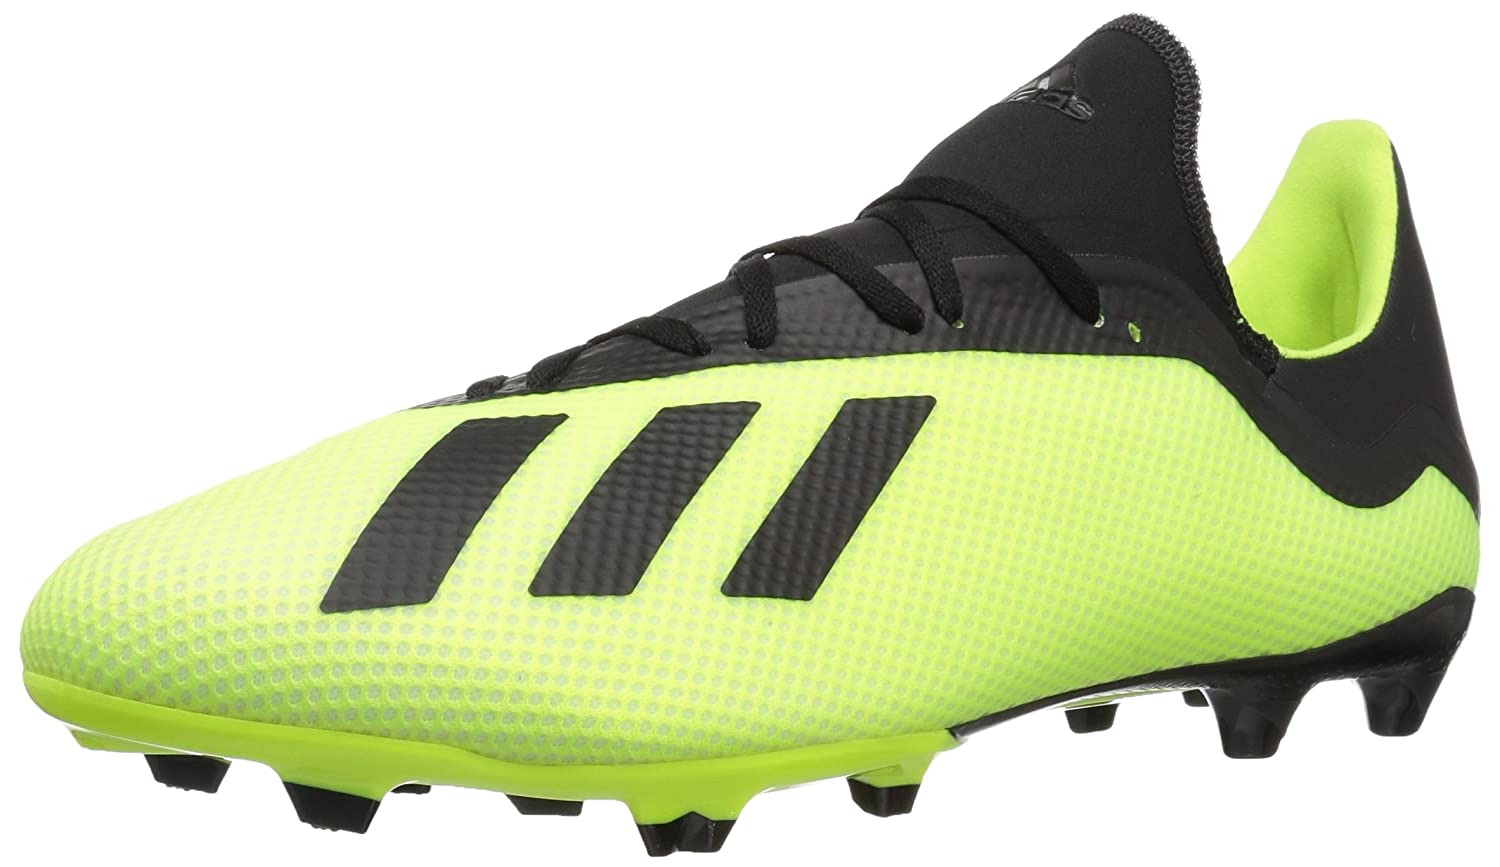 adidas Men's X 18.3 Firm Ground Soccer Shoe B077XF8G1C 13.5 M US|Solar Yellow/Black/White